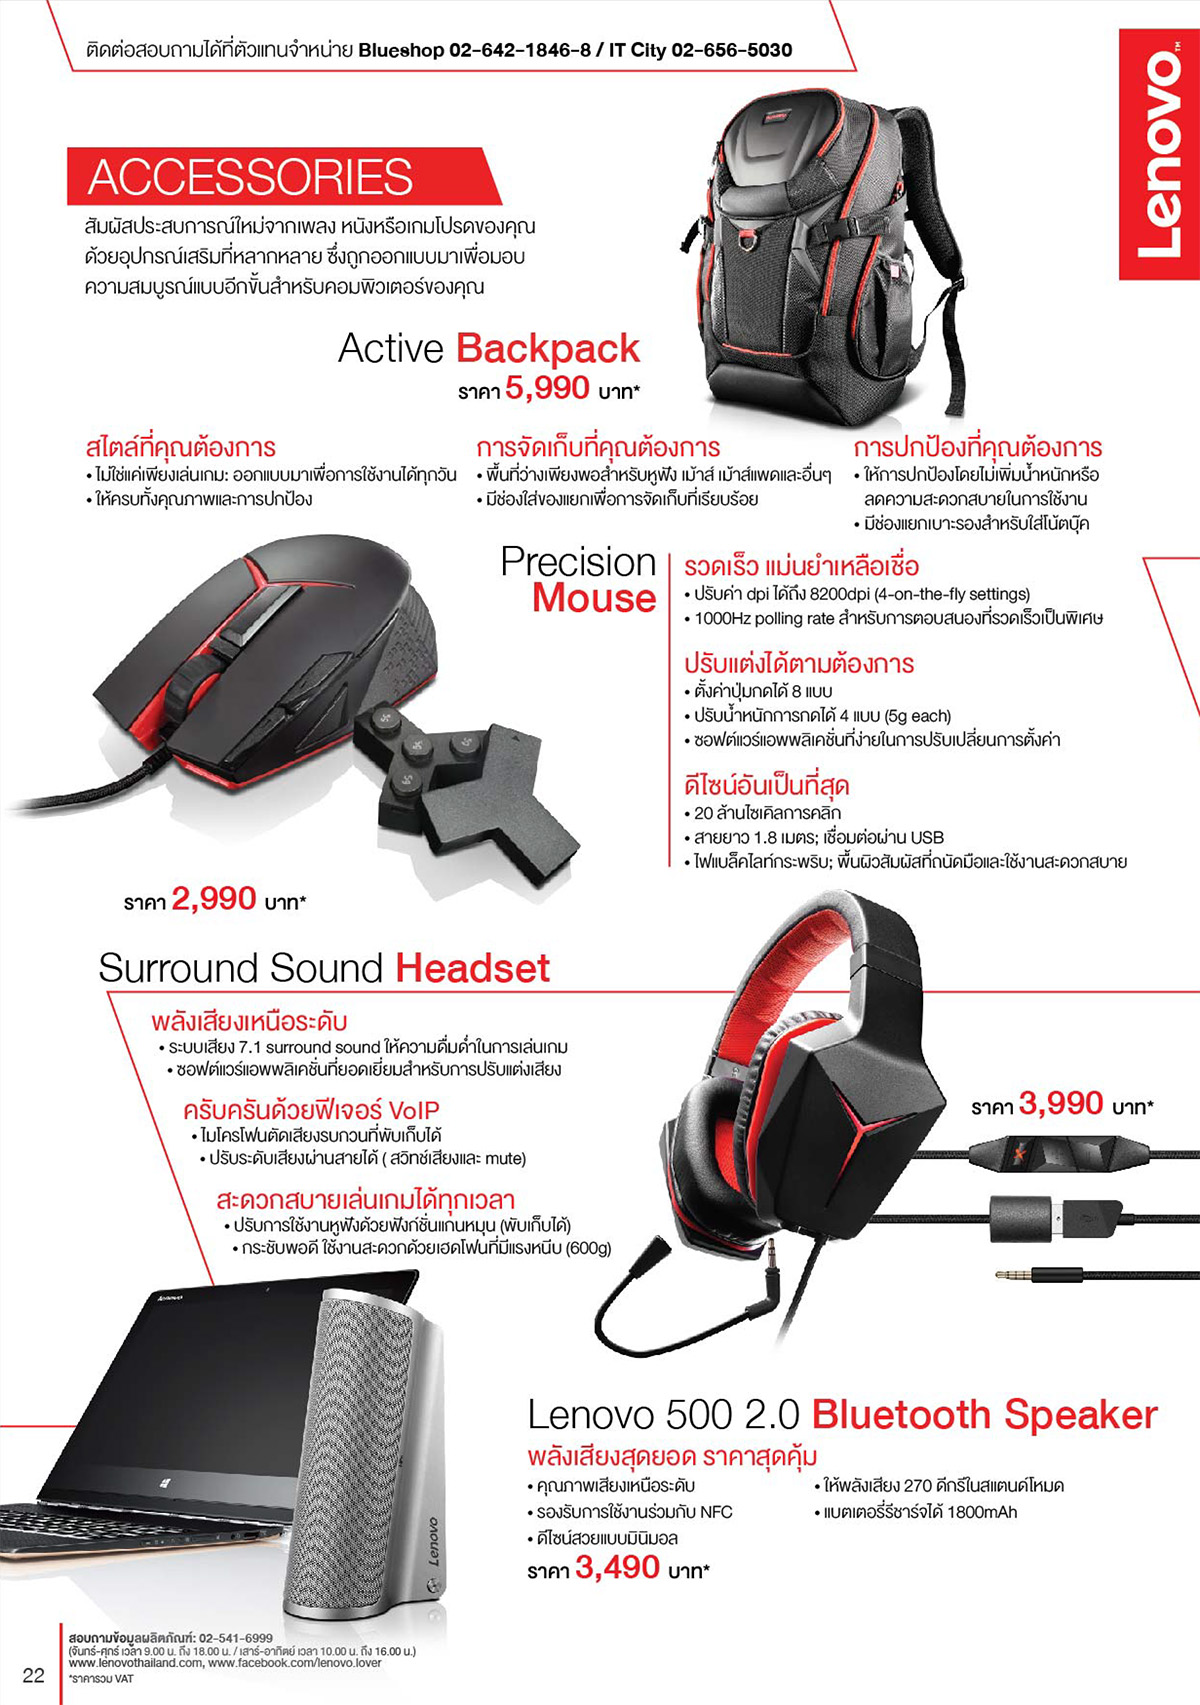 Lenovo Consumer Product Catalog Q2FY15_Final AW-22